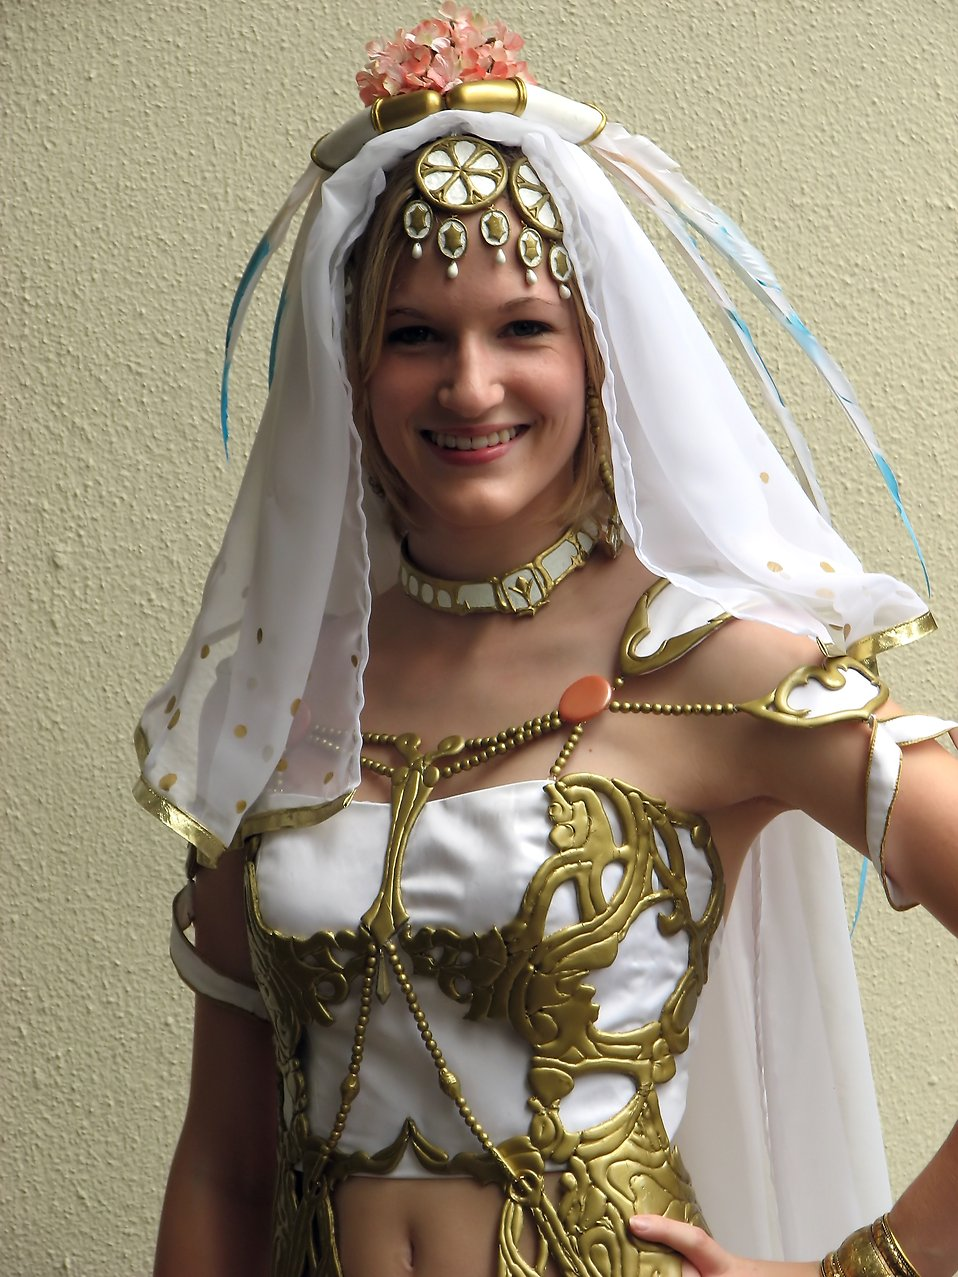 A beautiful girl in a costume at Dragoncon 2009 in Atlanta, Georgia : Free Stock Photo